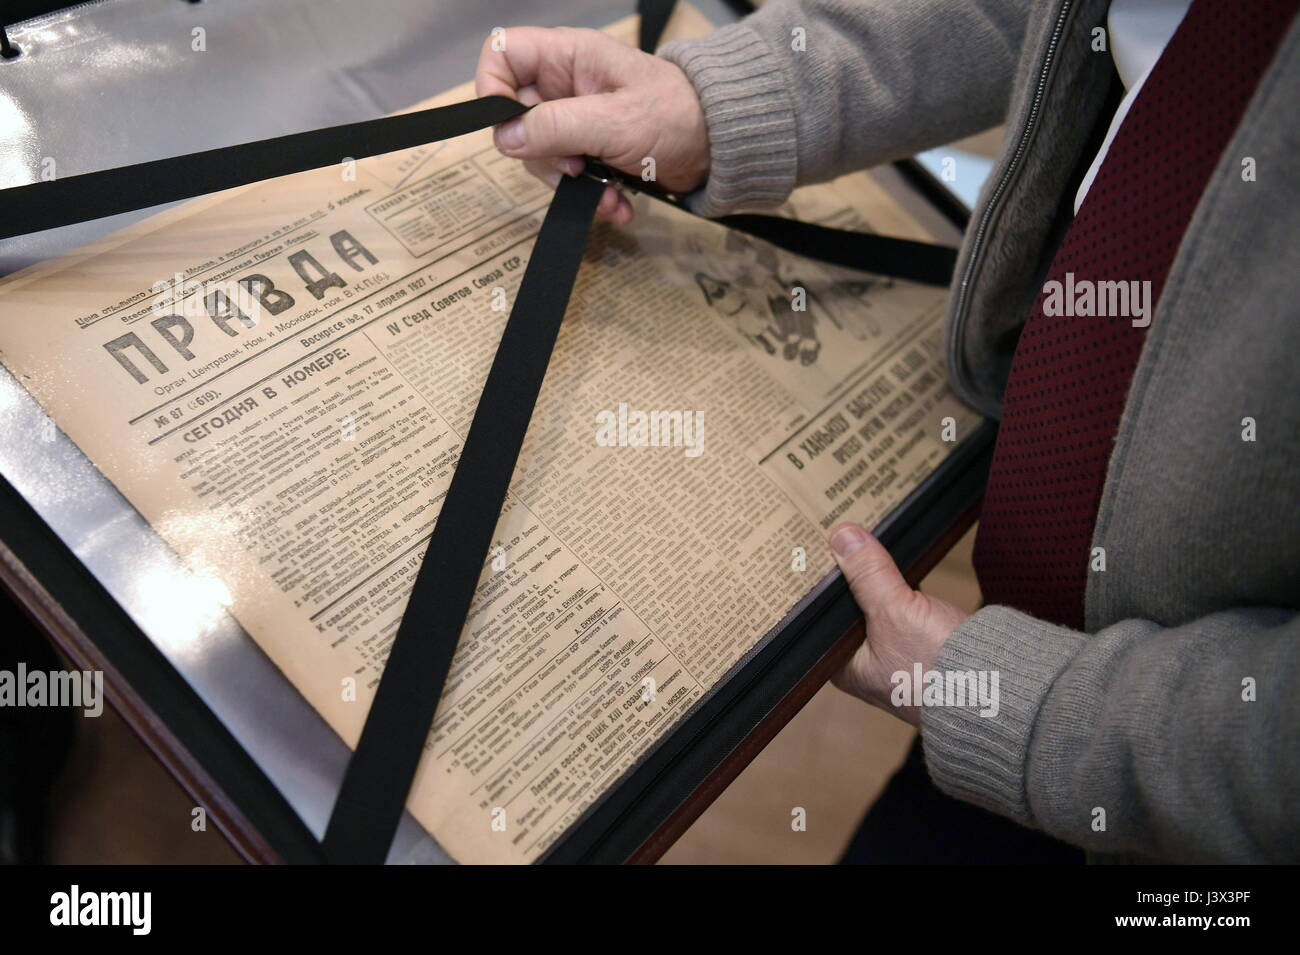 Moscow, Russia. 8th May, 2017. Russia's president Vladimir Putin with an archived edition of the Pravda newspaper - Stock Image